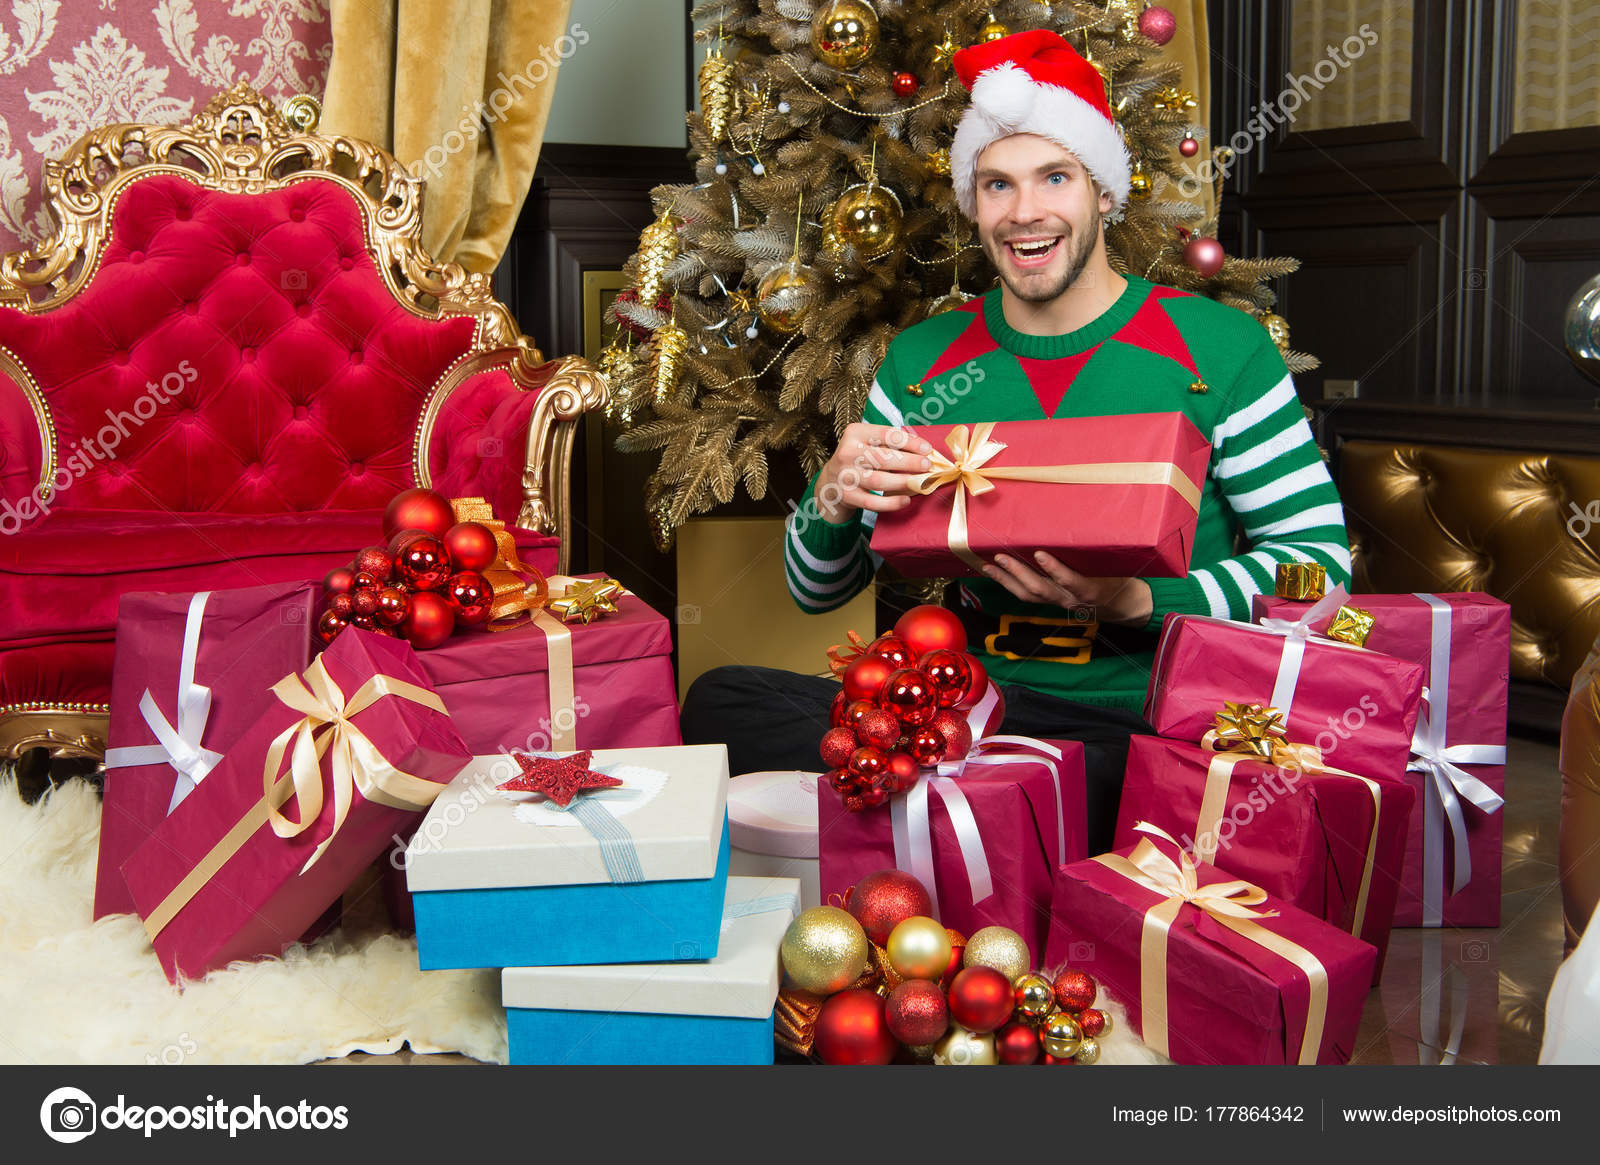 583196836e8dd Macho in elf costume prepare gift boxes. Man in santa hat smile with  presents at Christmas tree. Holidays preparation